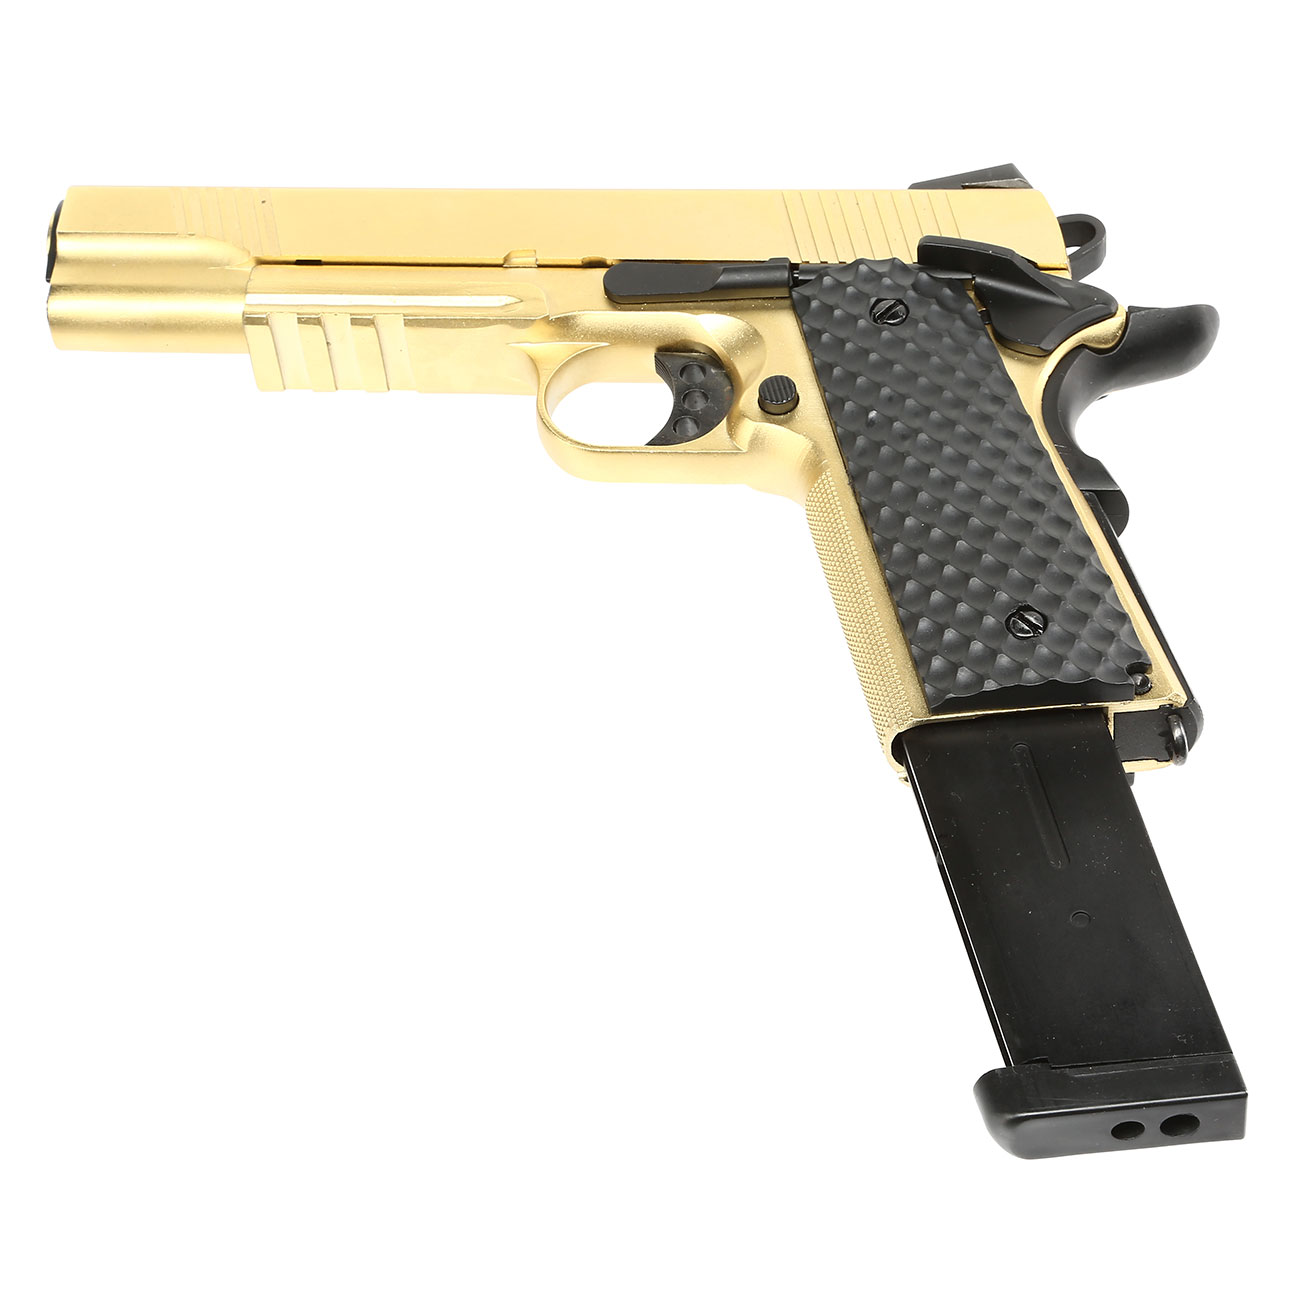 Nuprol Raven M1911 MEU Railed Vollmetall GBB 6mm BB gold 5